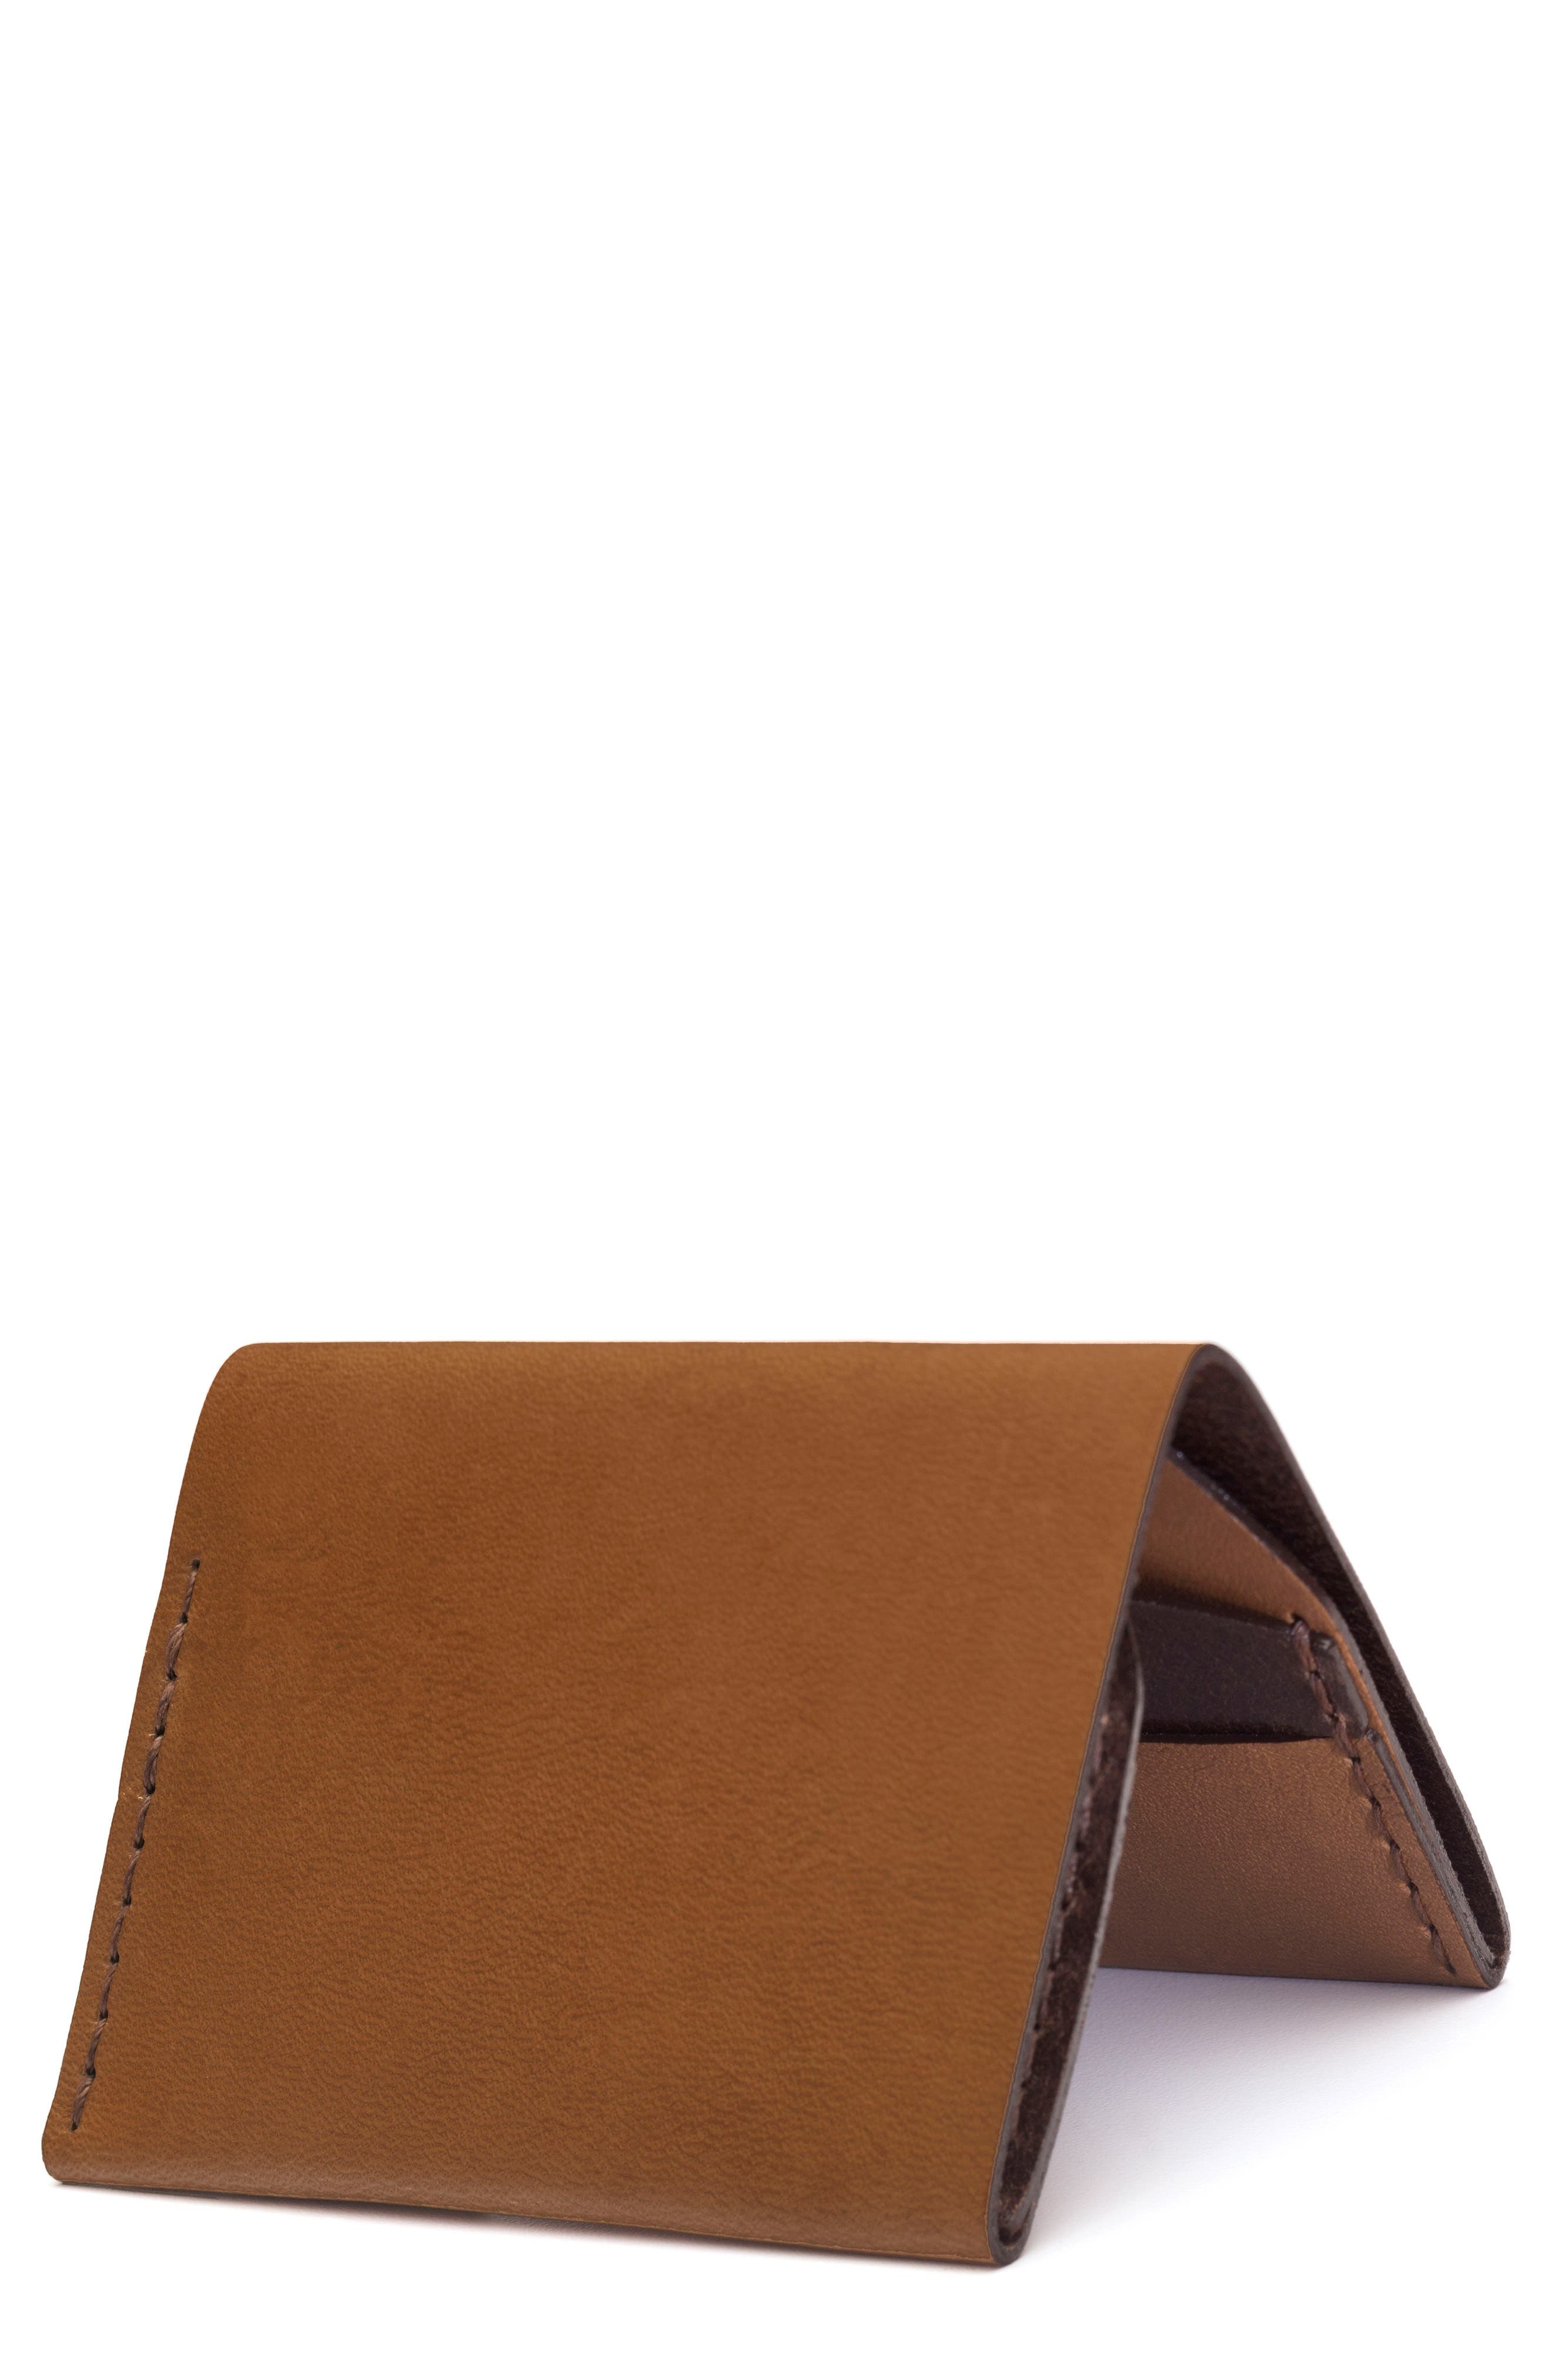 No. 4 Leather Wallet